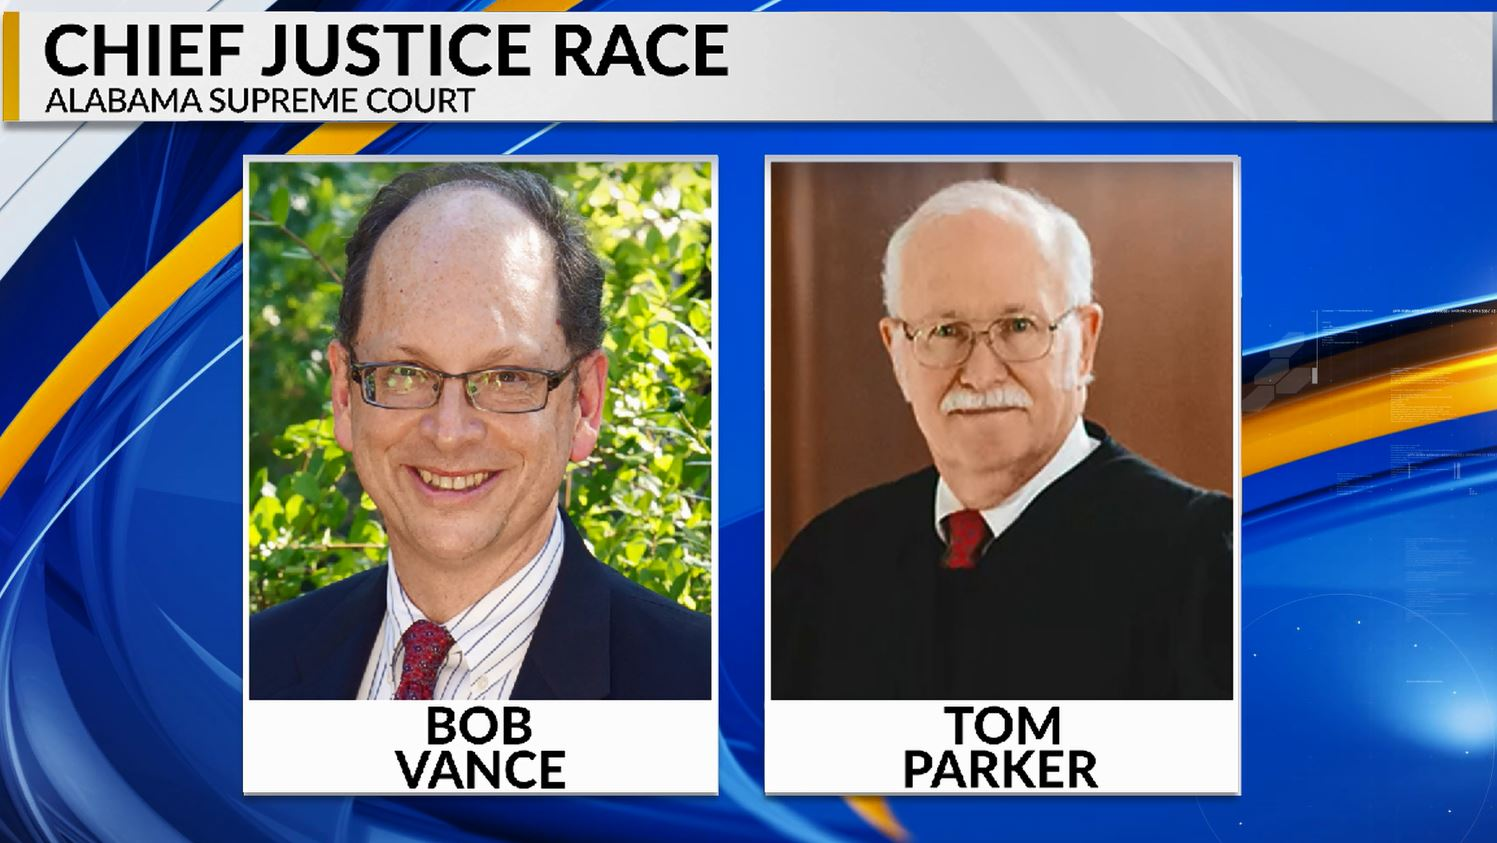 chief justice race_1532049190515.JPG.jpg